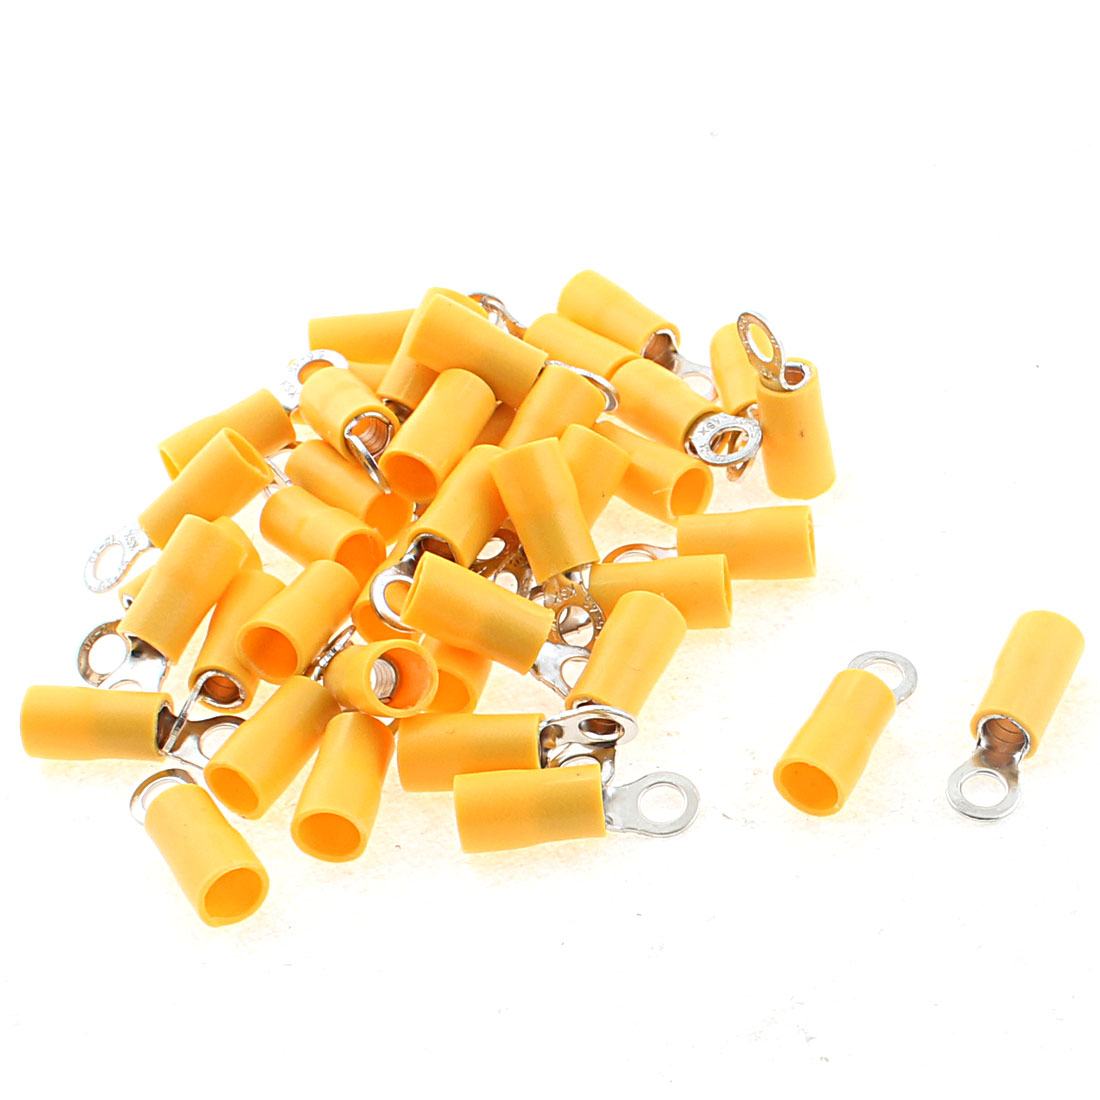 RV5.5-4 Pre Insulated Ring Terminal 12-10 AWG Cable Connector Yellow 41pcs